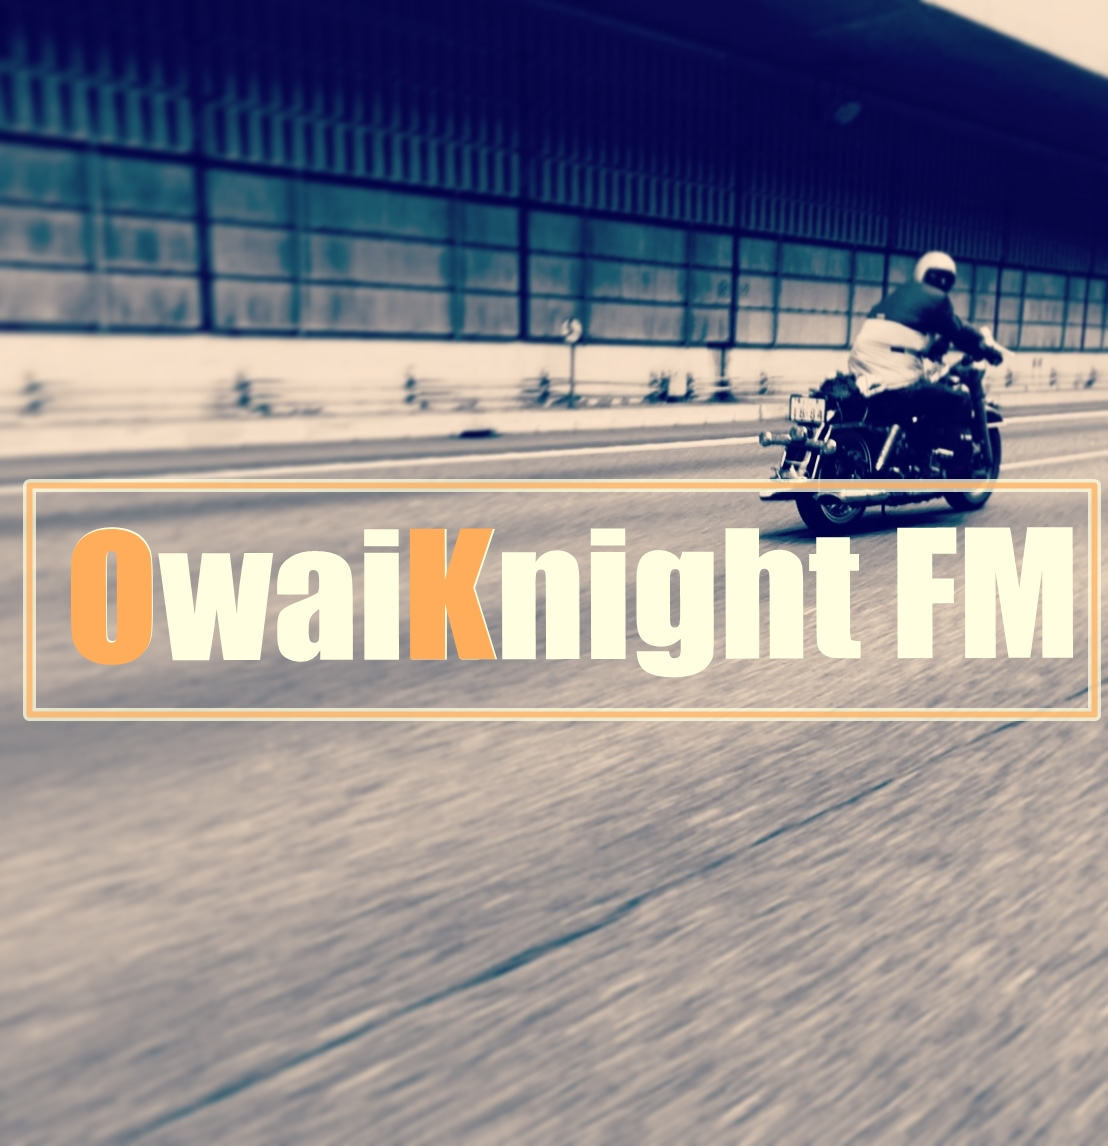 【OwaiKnght FM】#2  悪口の根源